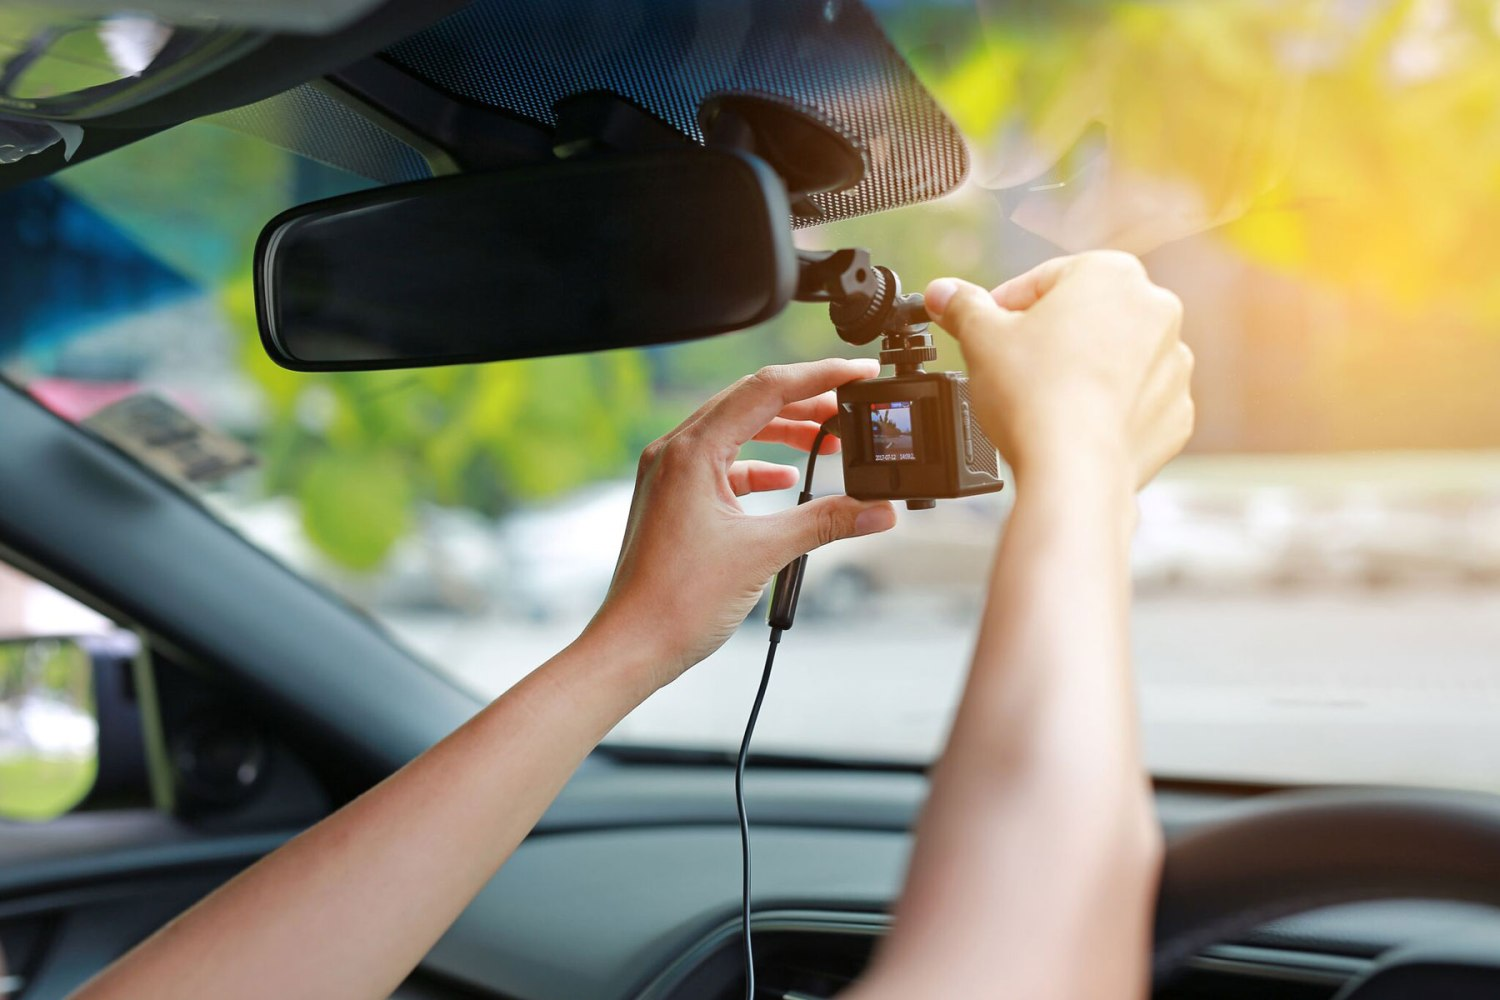 Camera, no action: only 20% of dash cam footage is used